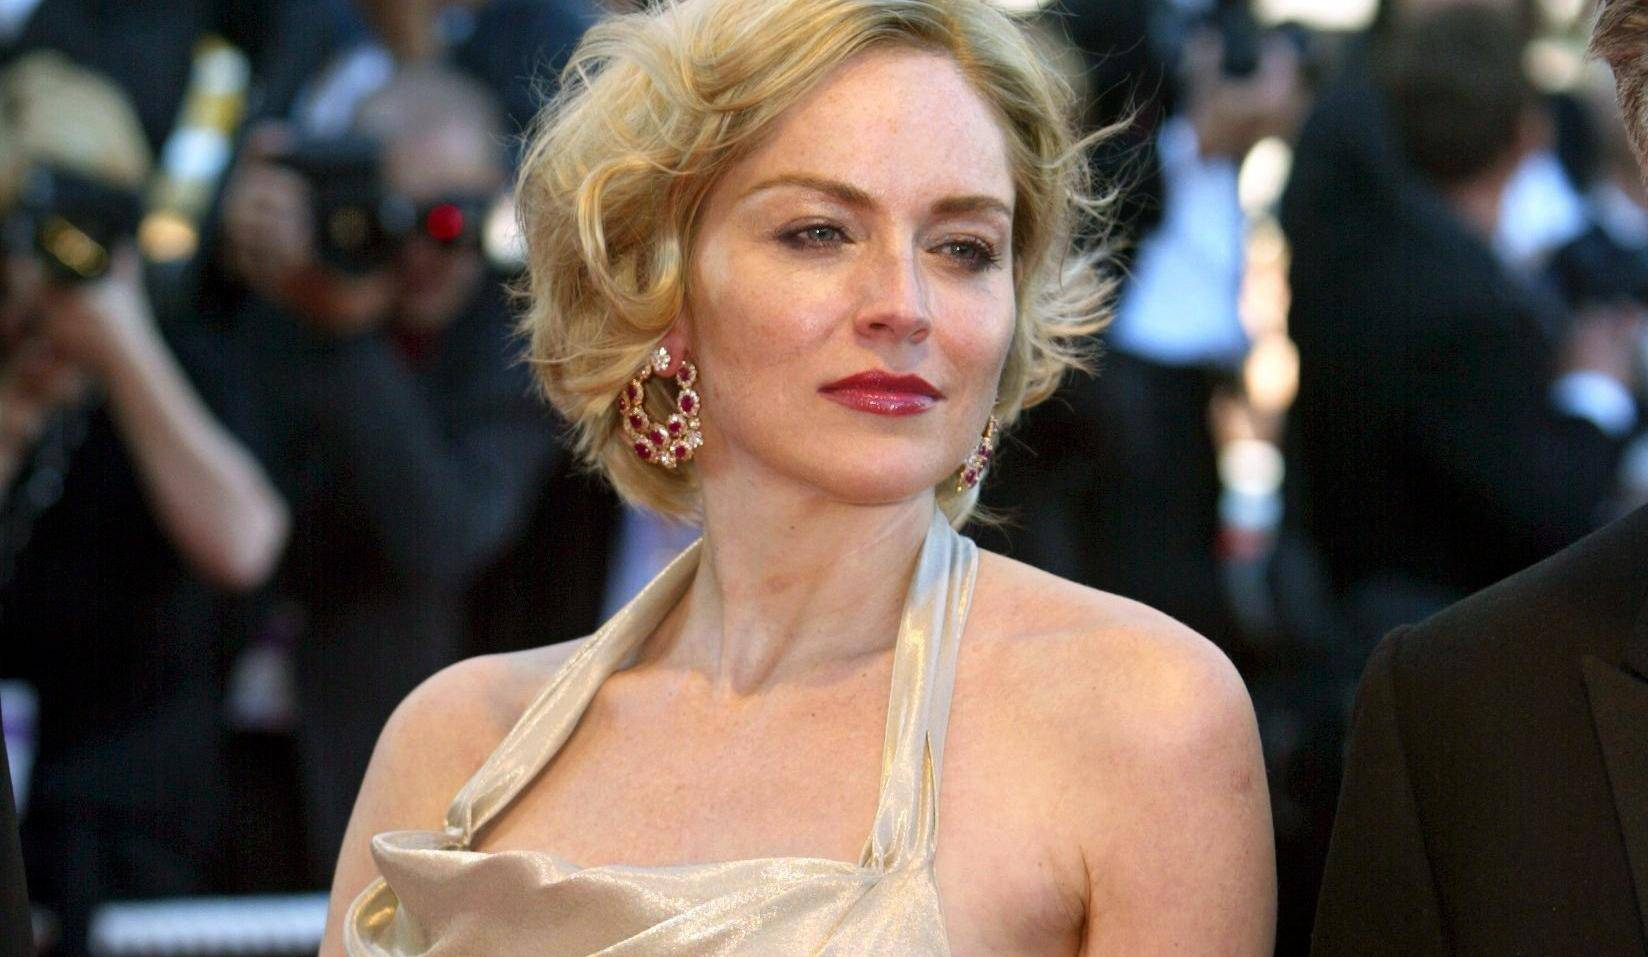 55th Cannes Film Festival - Sharon Stone